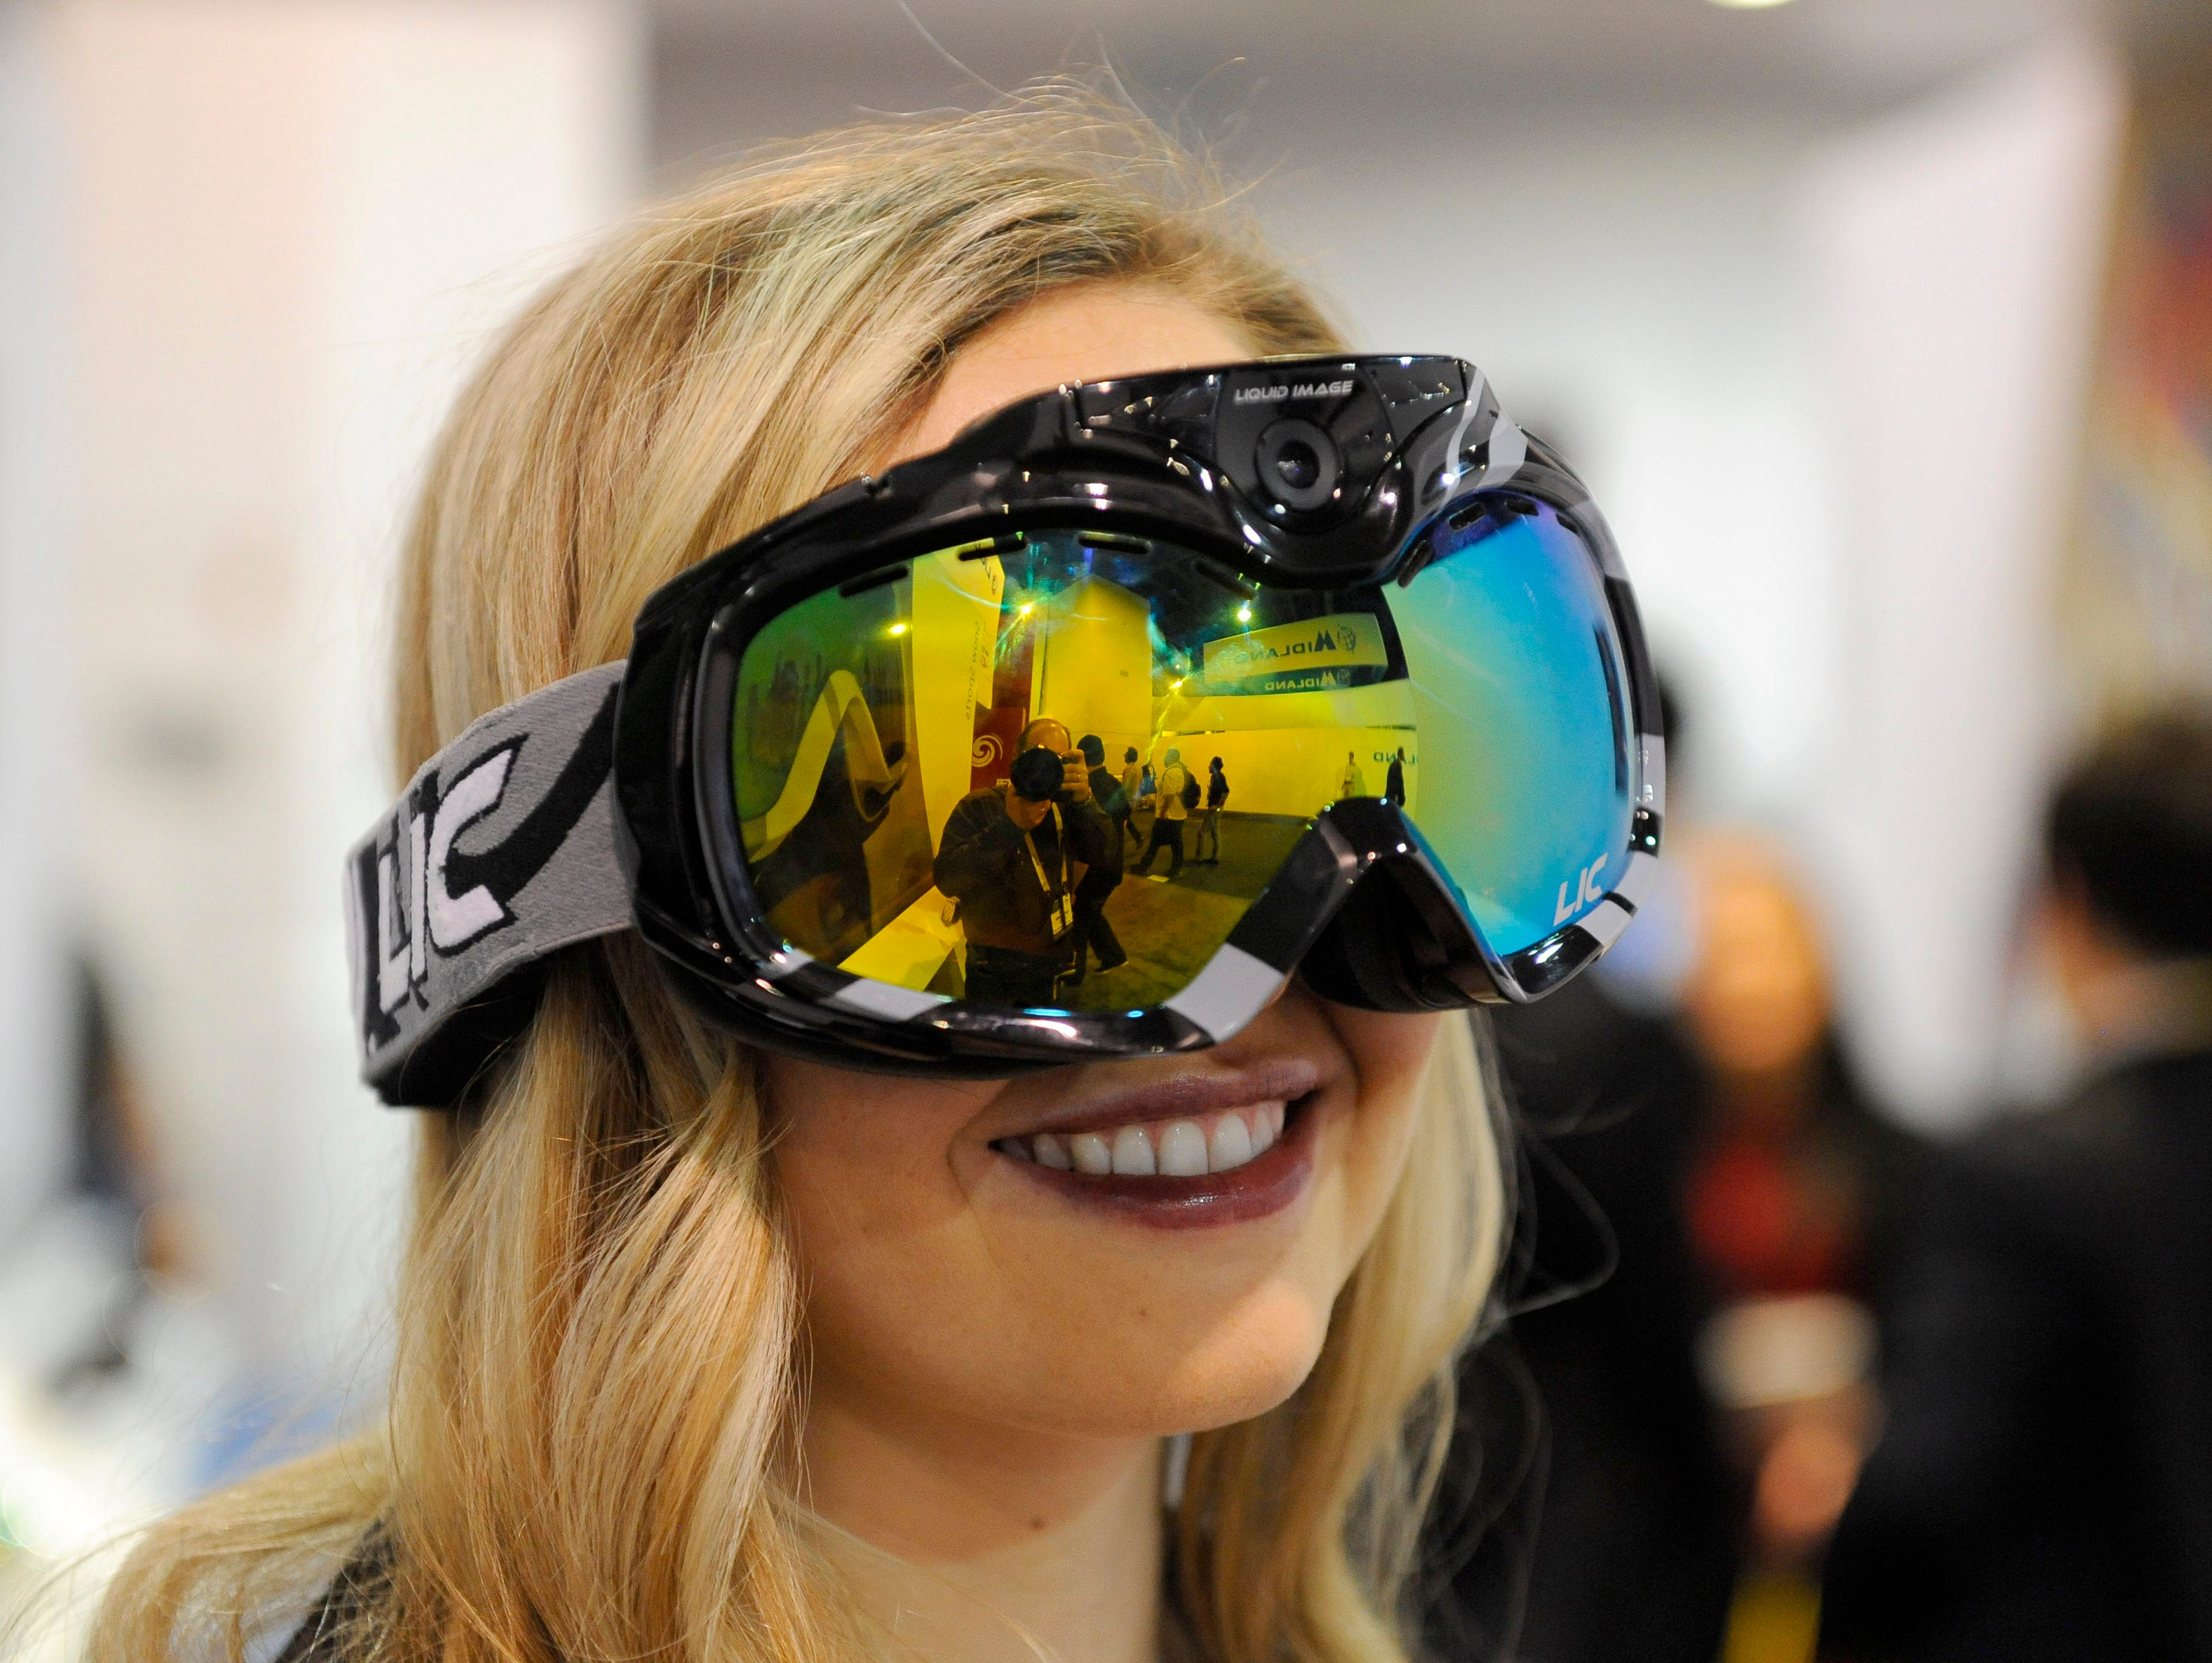 The Liquid Imag Apex HD snowboard and ski goggles capture POV footage of everything you see.